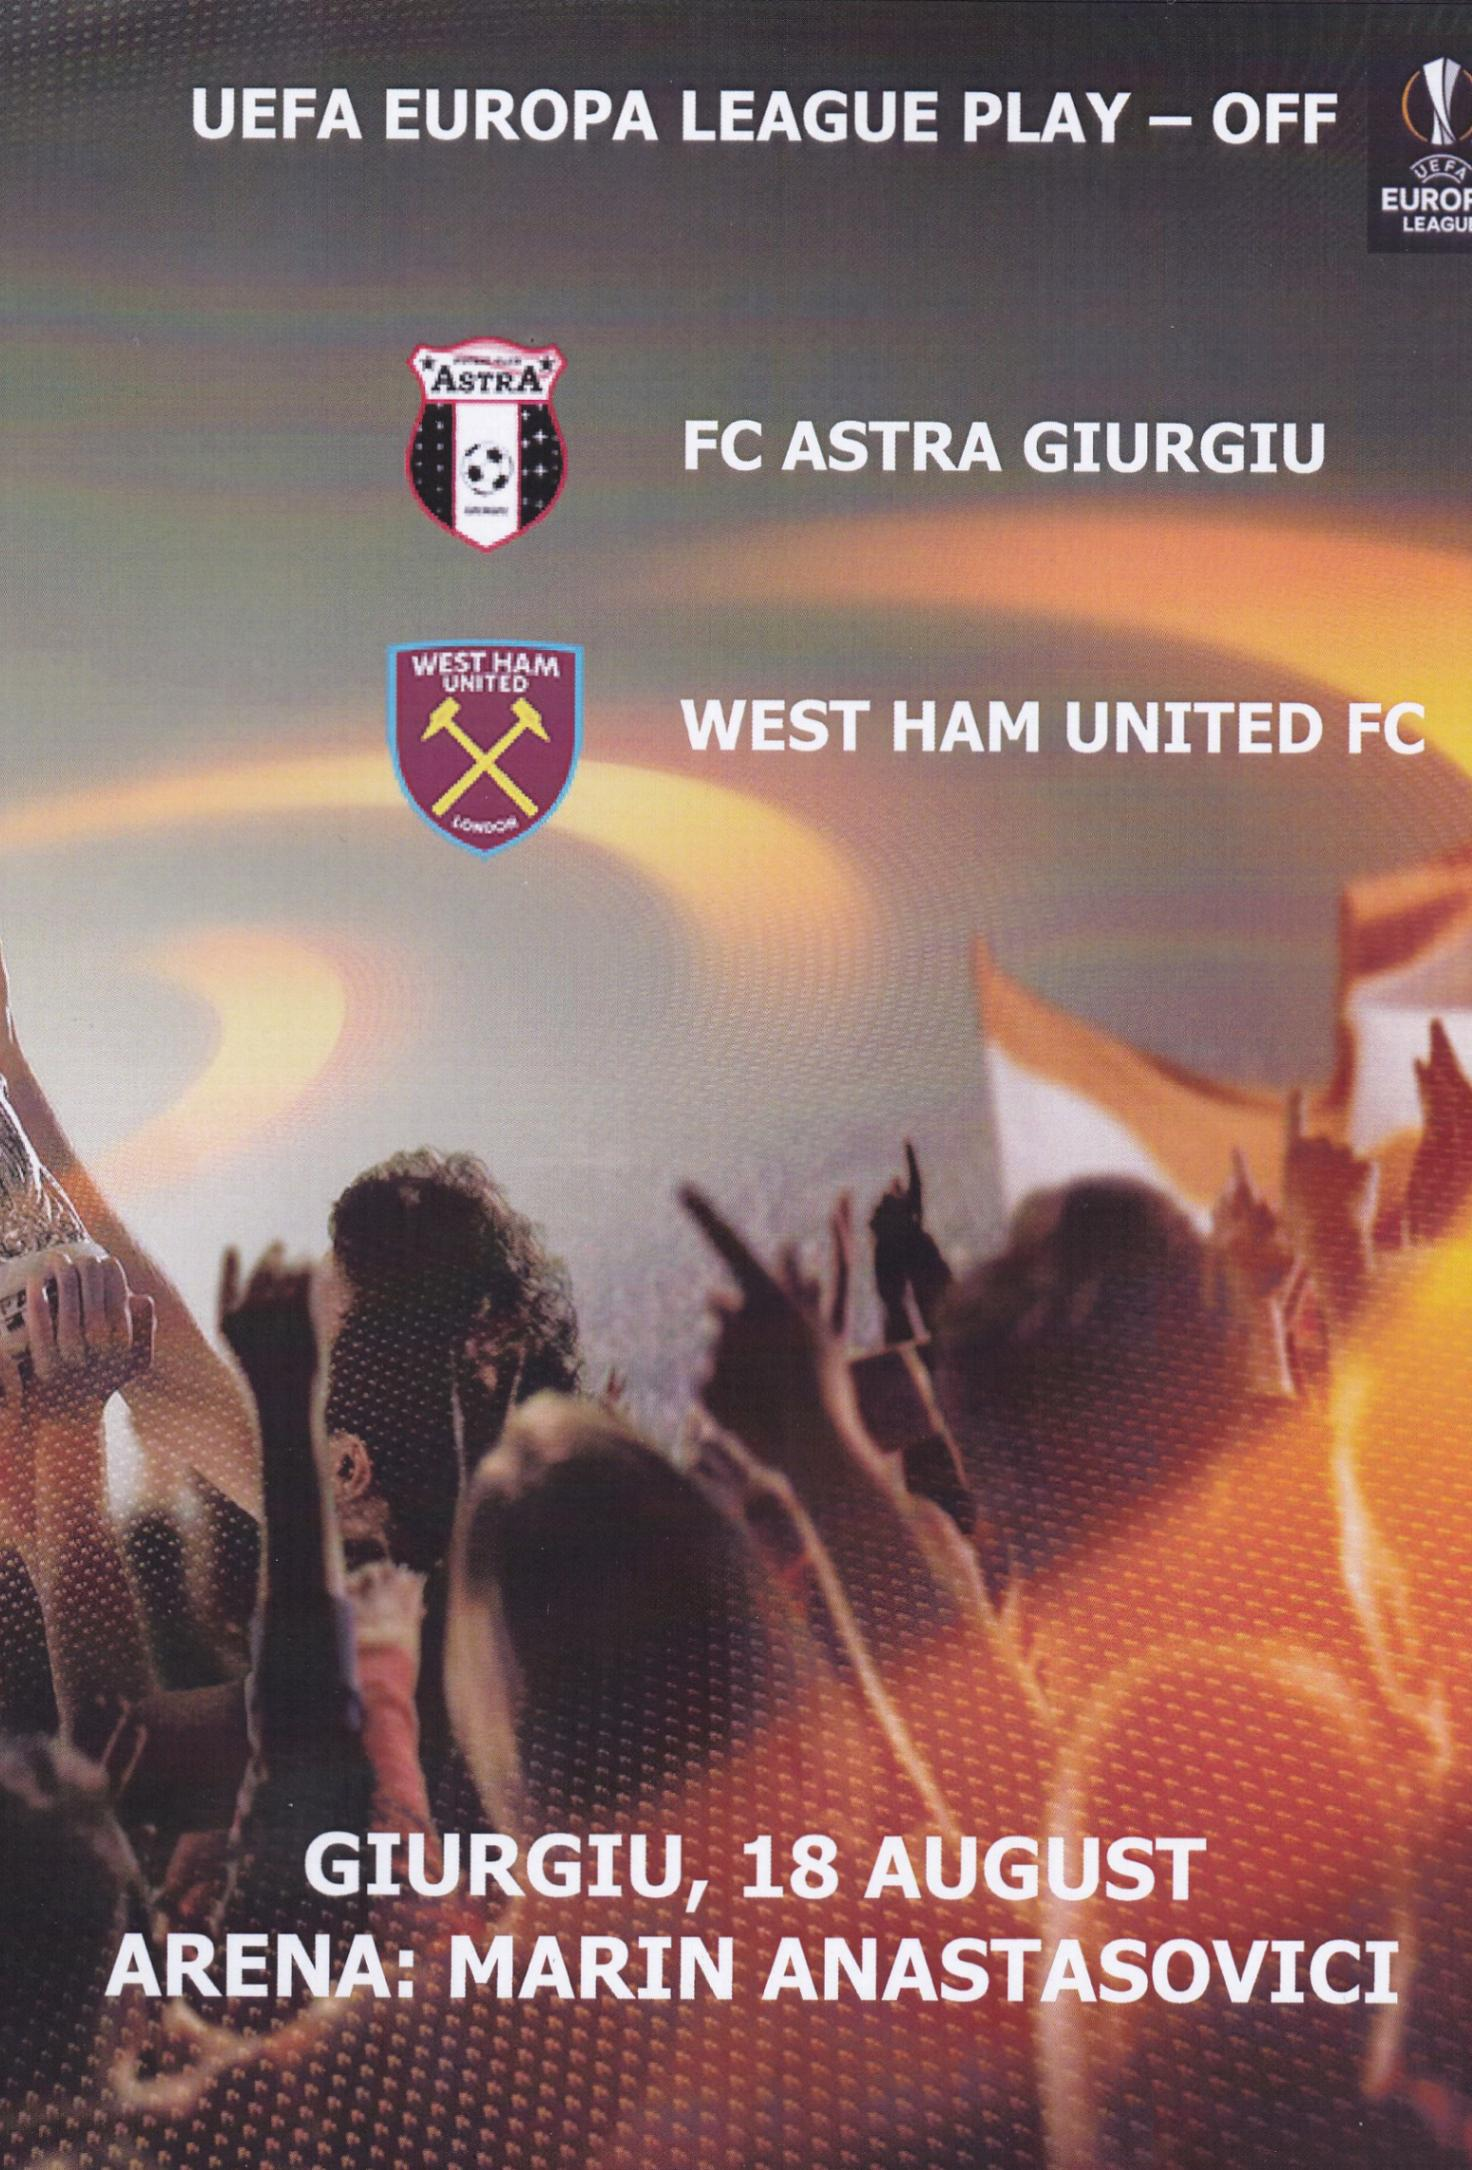 2016/17 EUROPA LEAGUE - ASTRA GIURGIU v WEST HAM